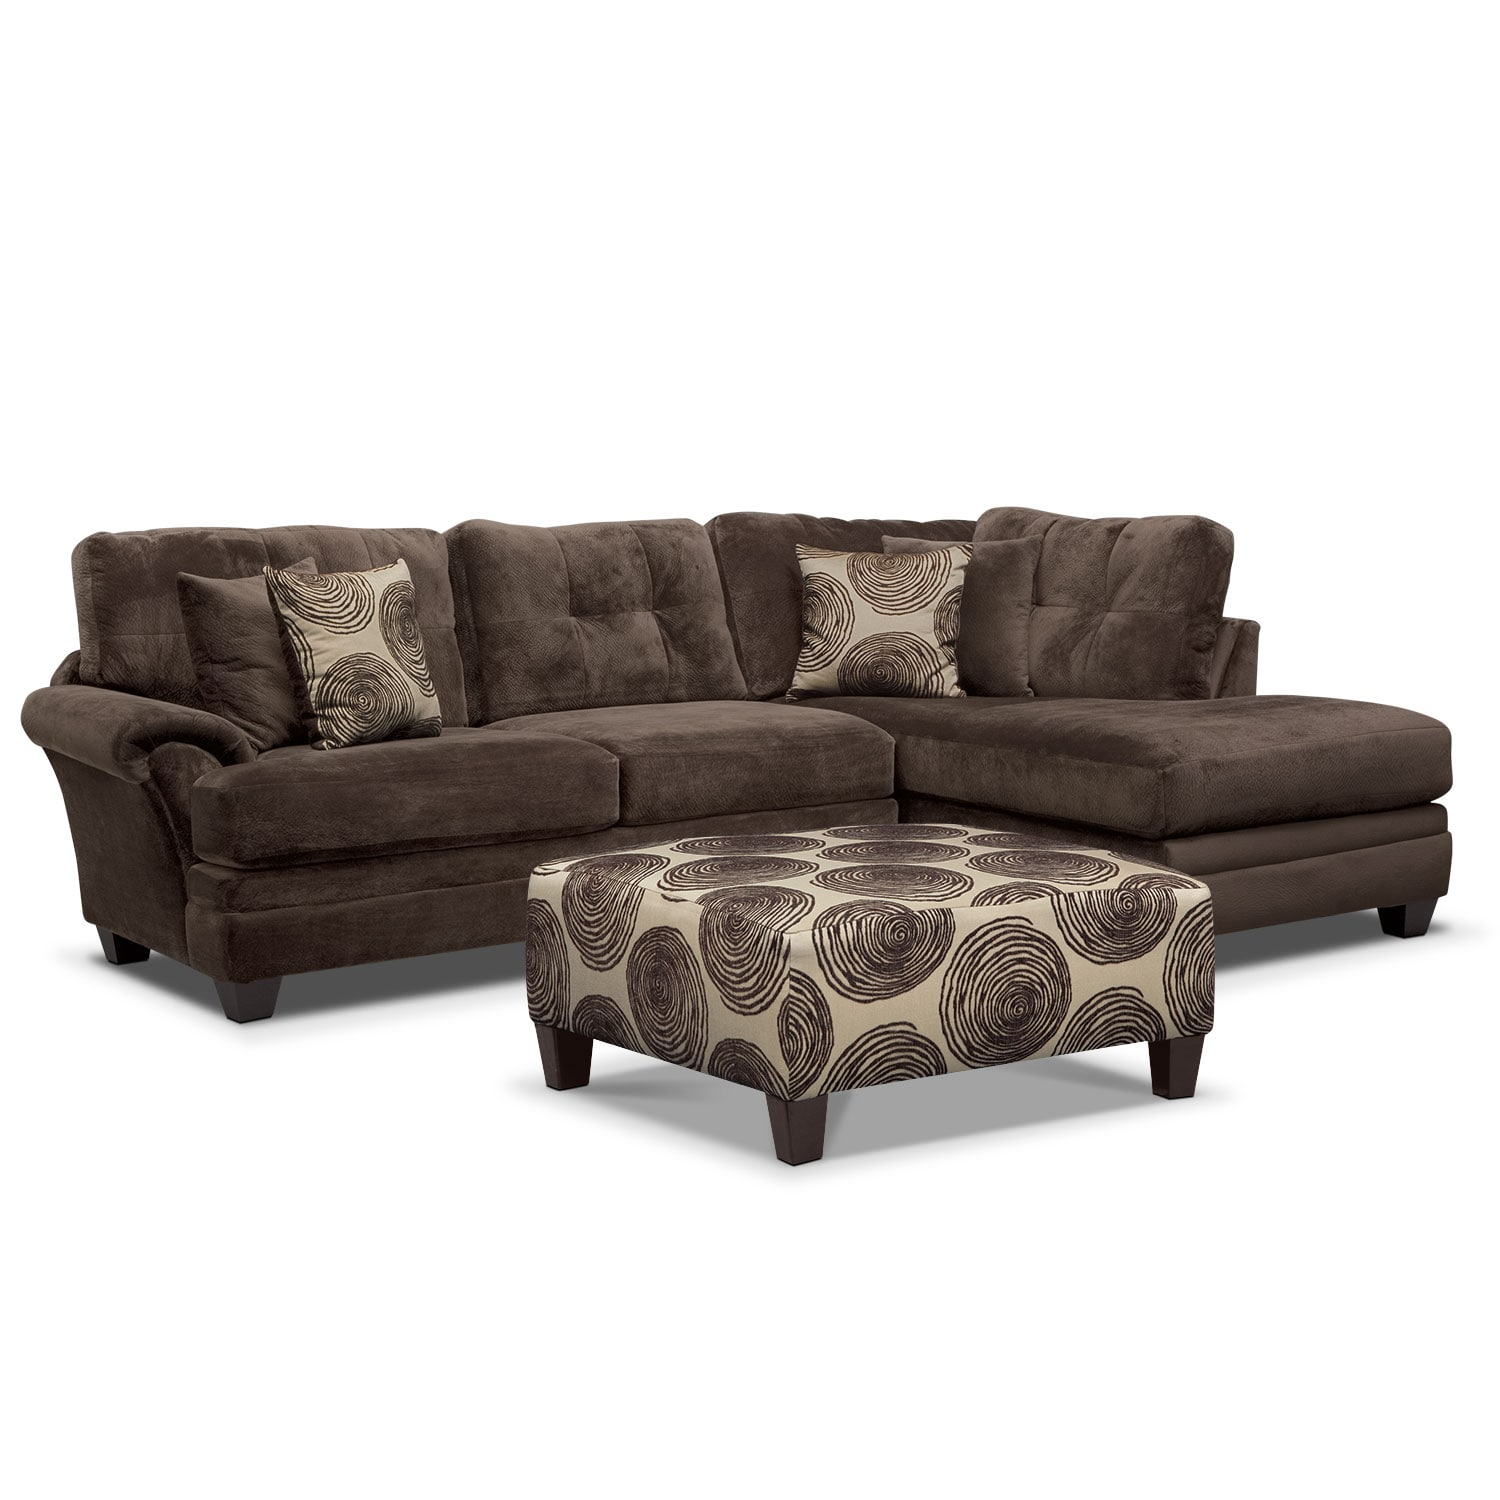 Cordelle 2-Piece Right-Facing Chaise Sectional Plus FREE Cocktail Ottoman - Chocolate